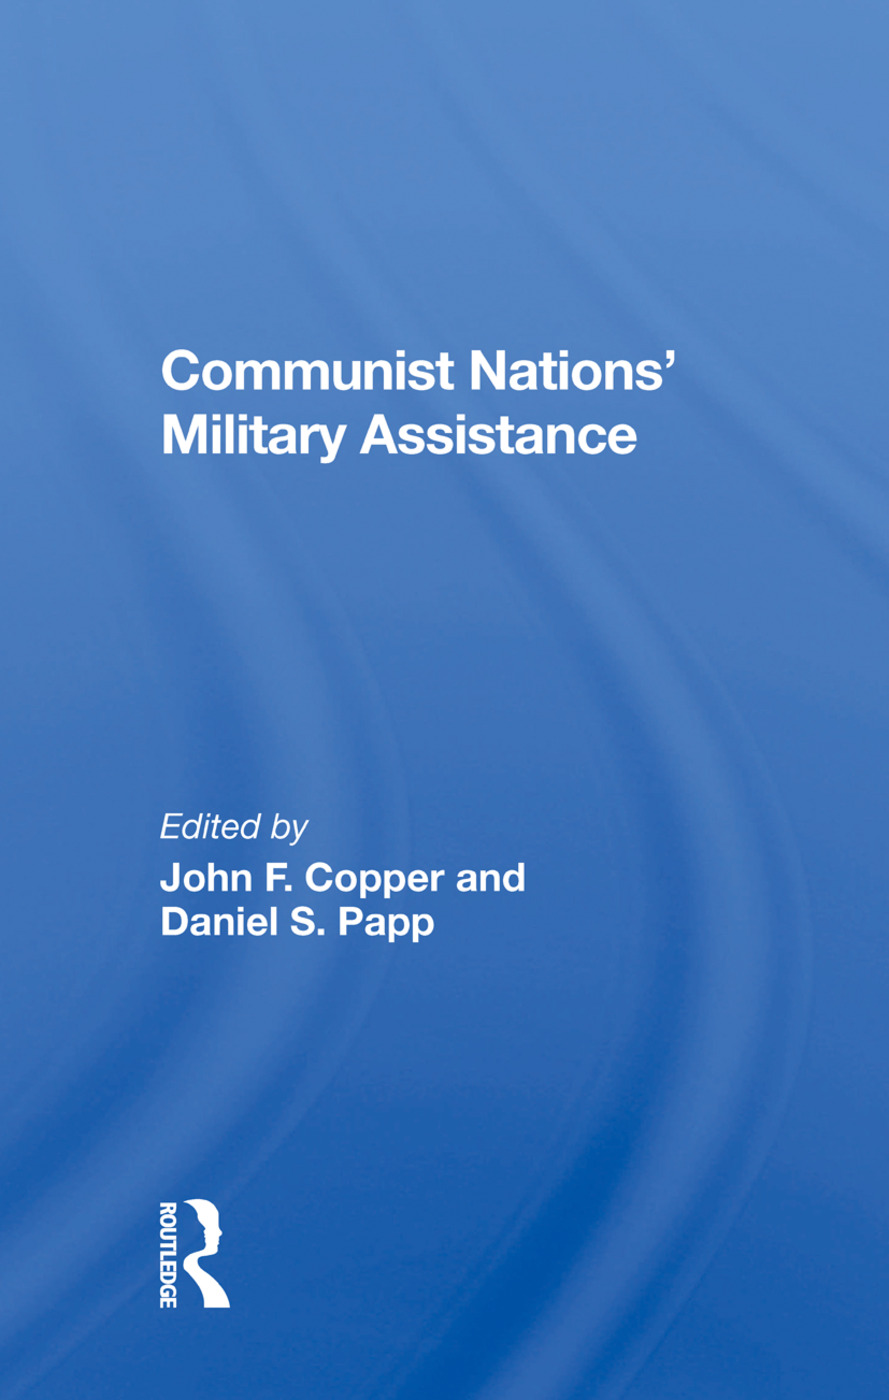 Communist Nations' Military Assistance